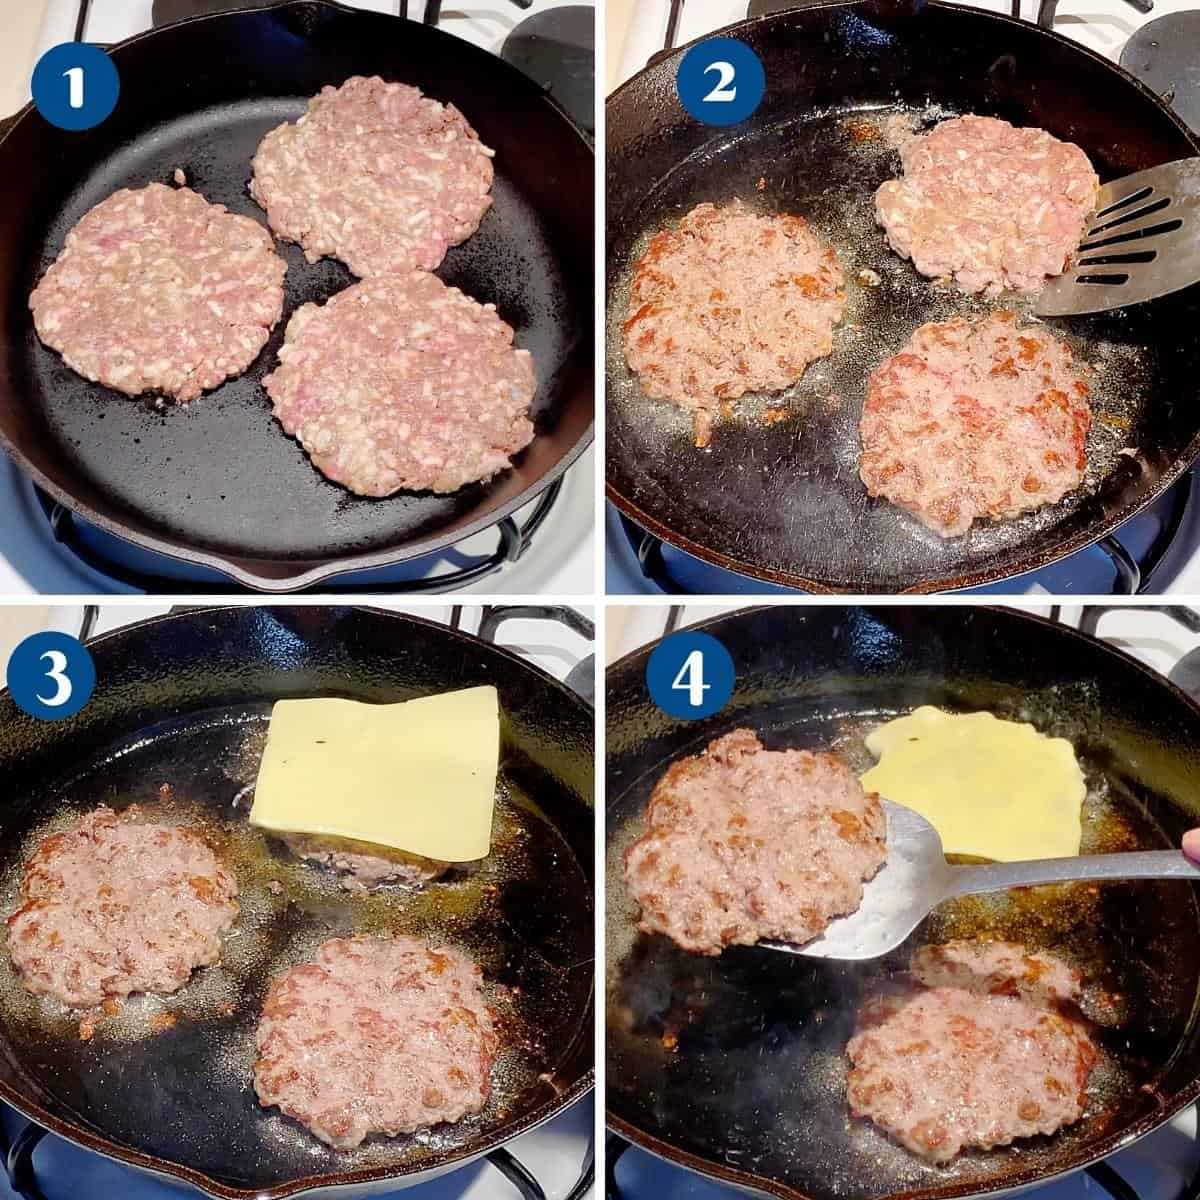 Progress pictures cooking beef burgers on a cast iron pan.